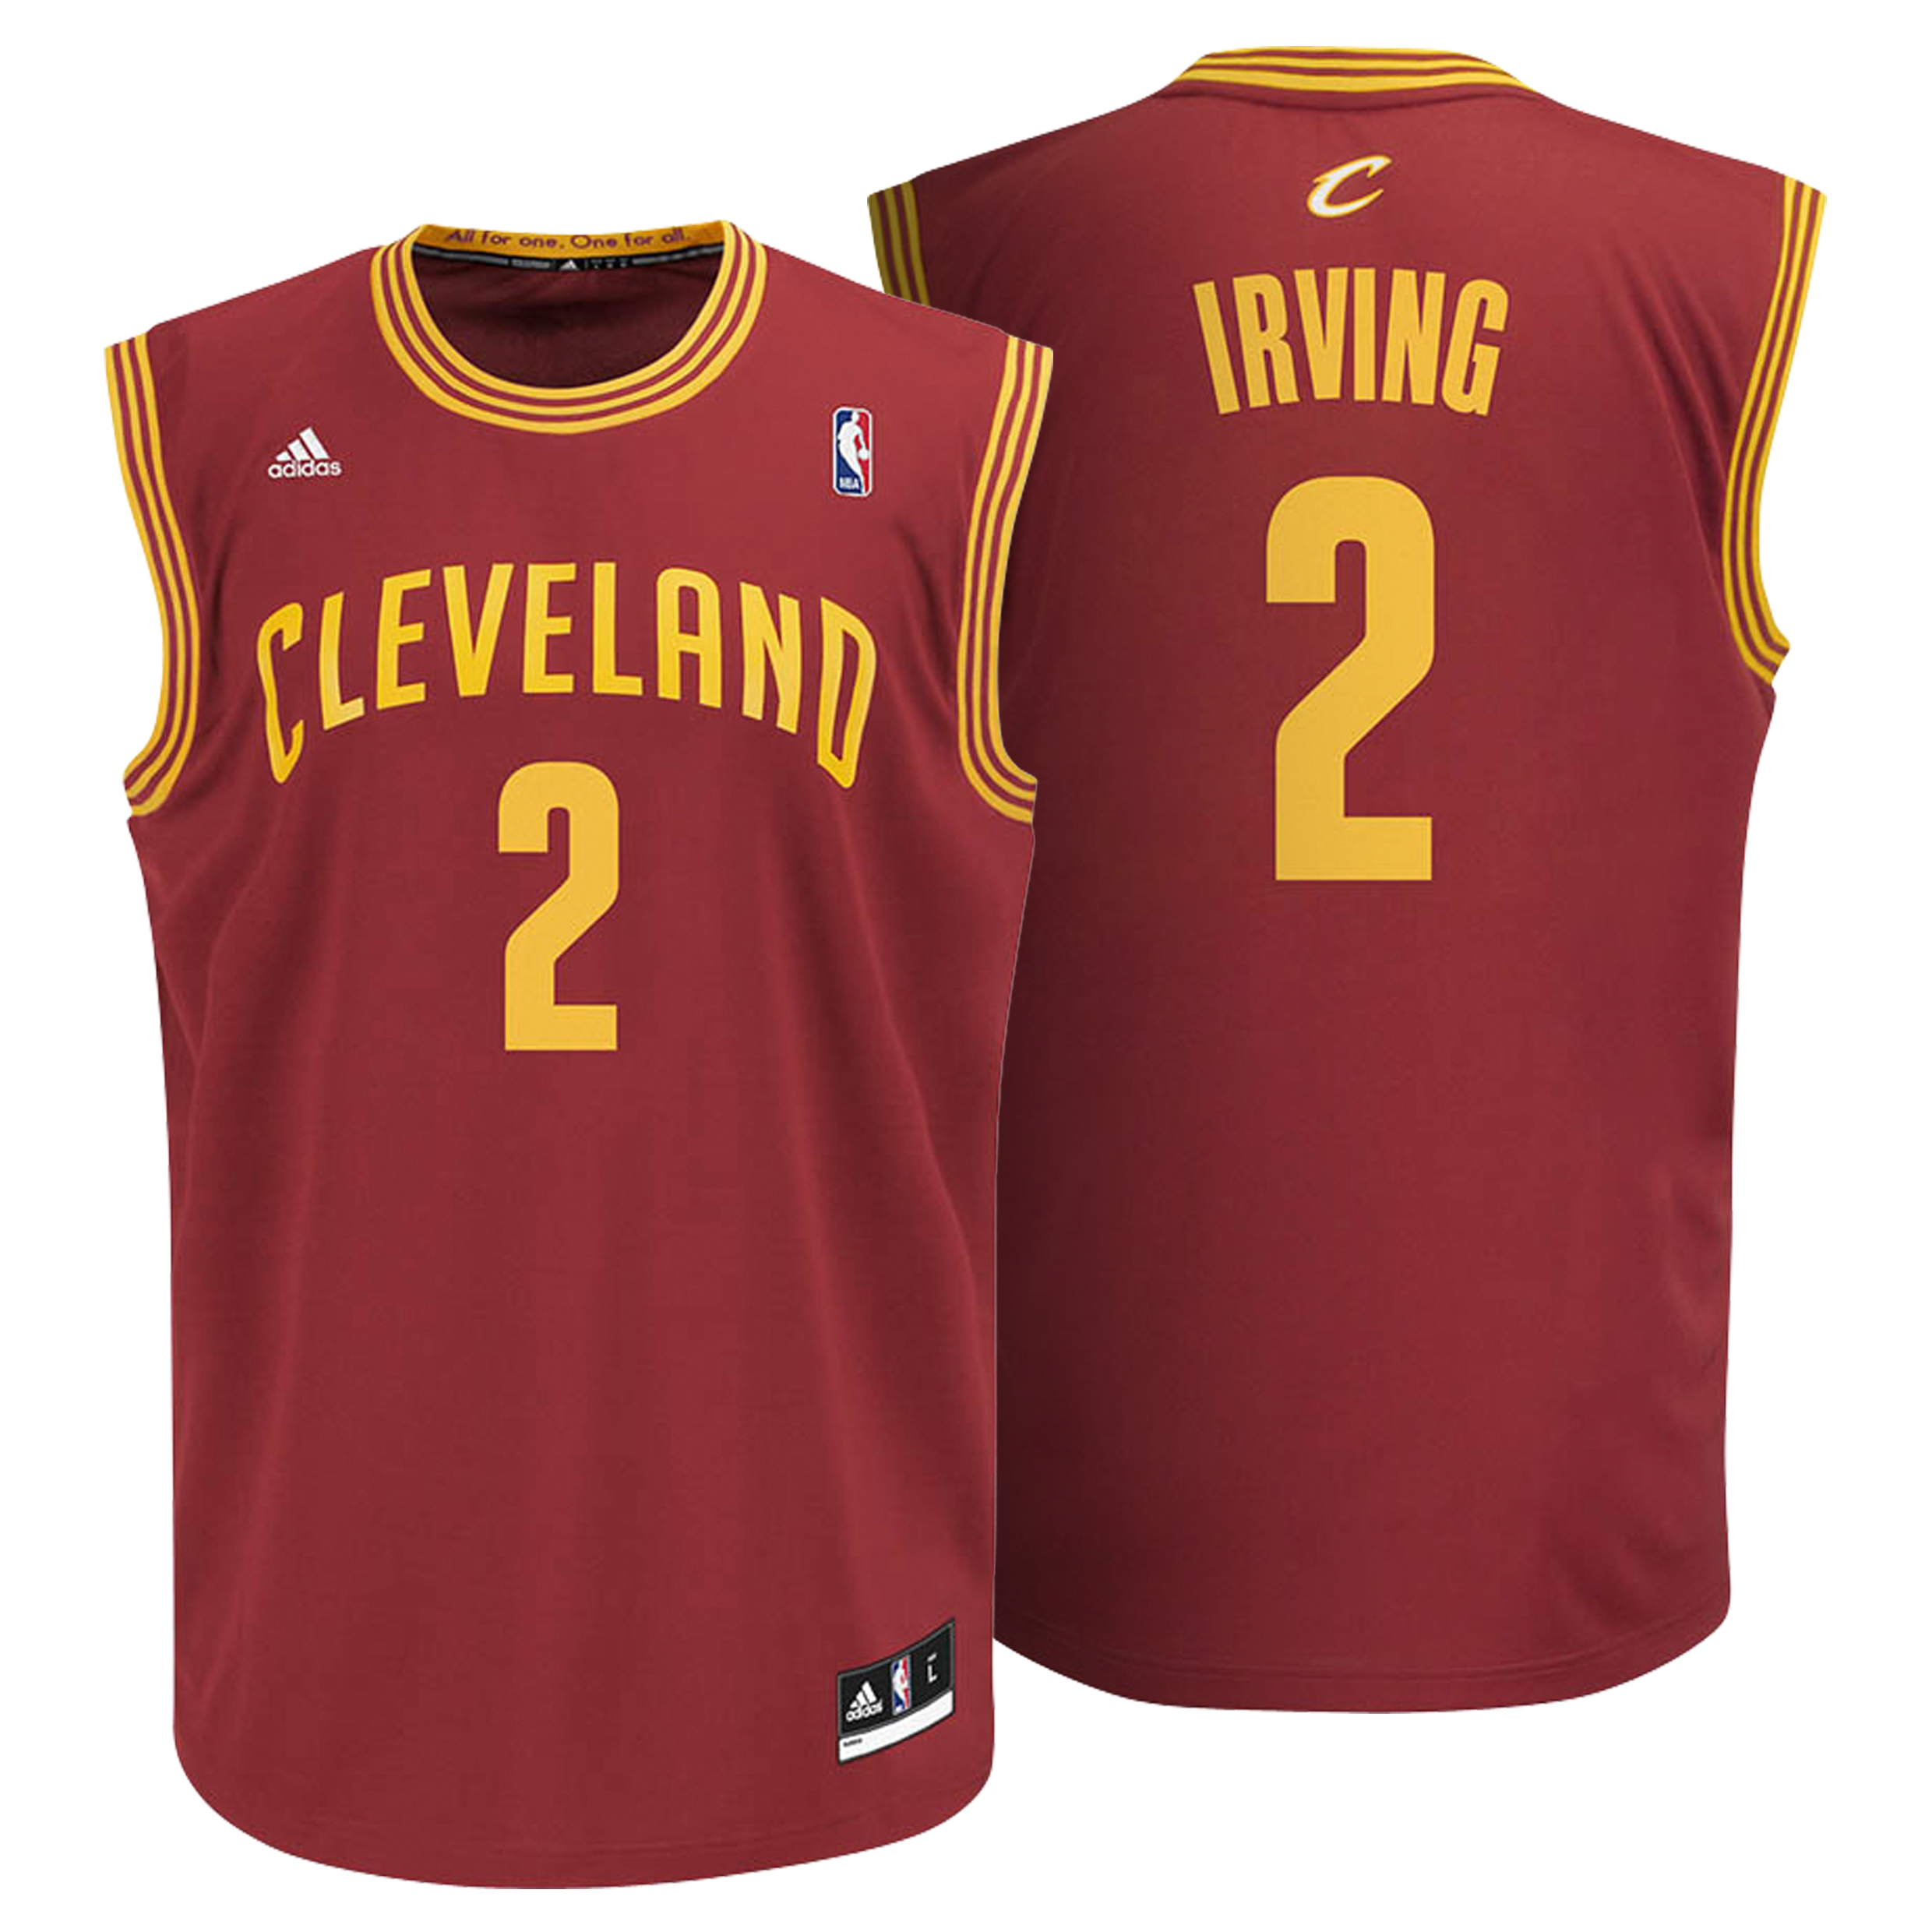 Cleveland Cavaliers Road Replica Jersey -Irving - Mens